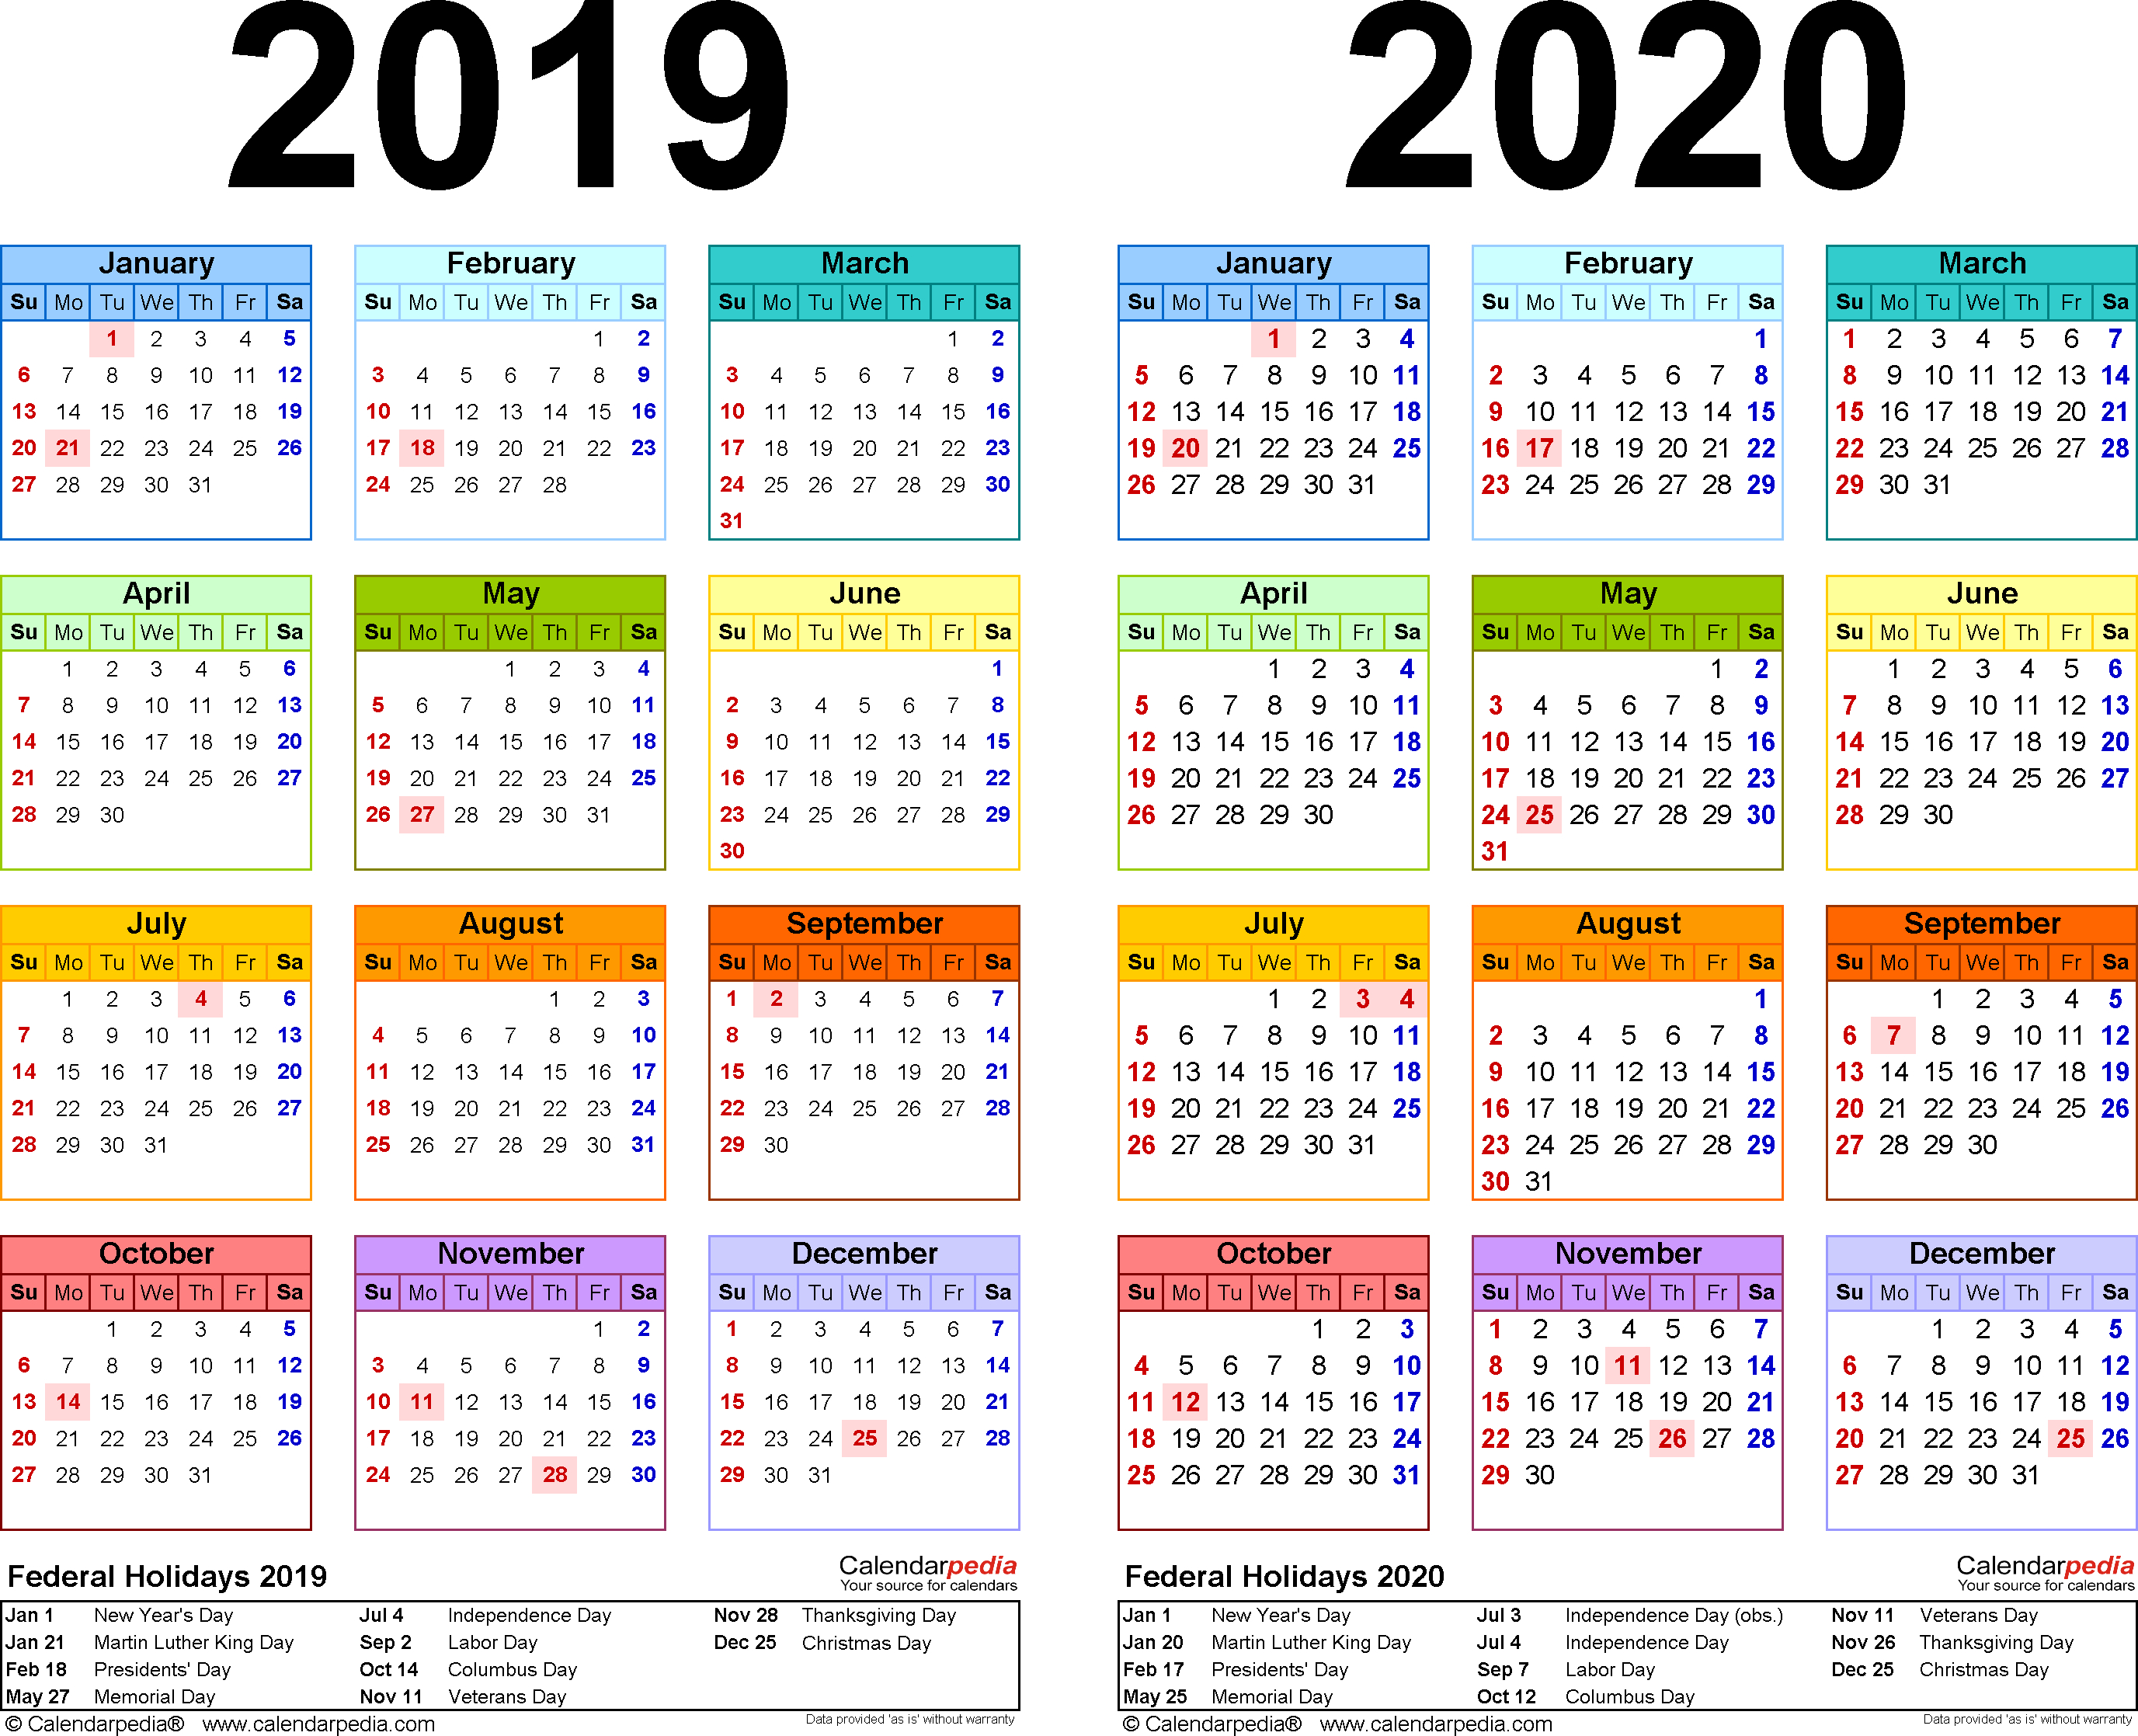 2019-2020 Calendar - Free Printable Two-Year Pdf Calendars throughout Printable Calendar 2019 2020 Monday To Sunday